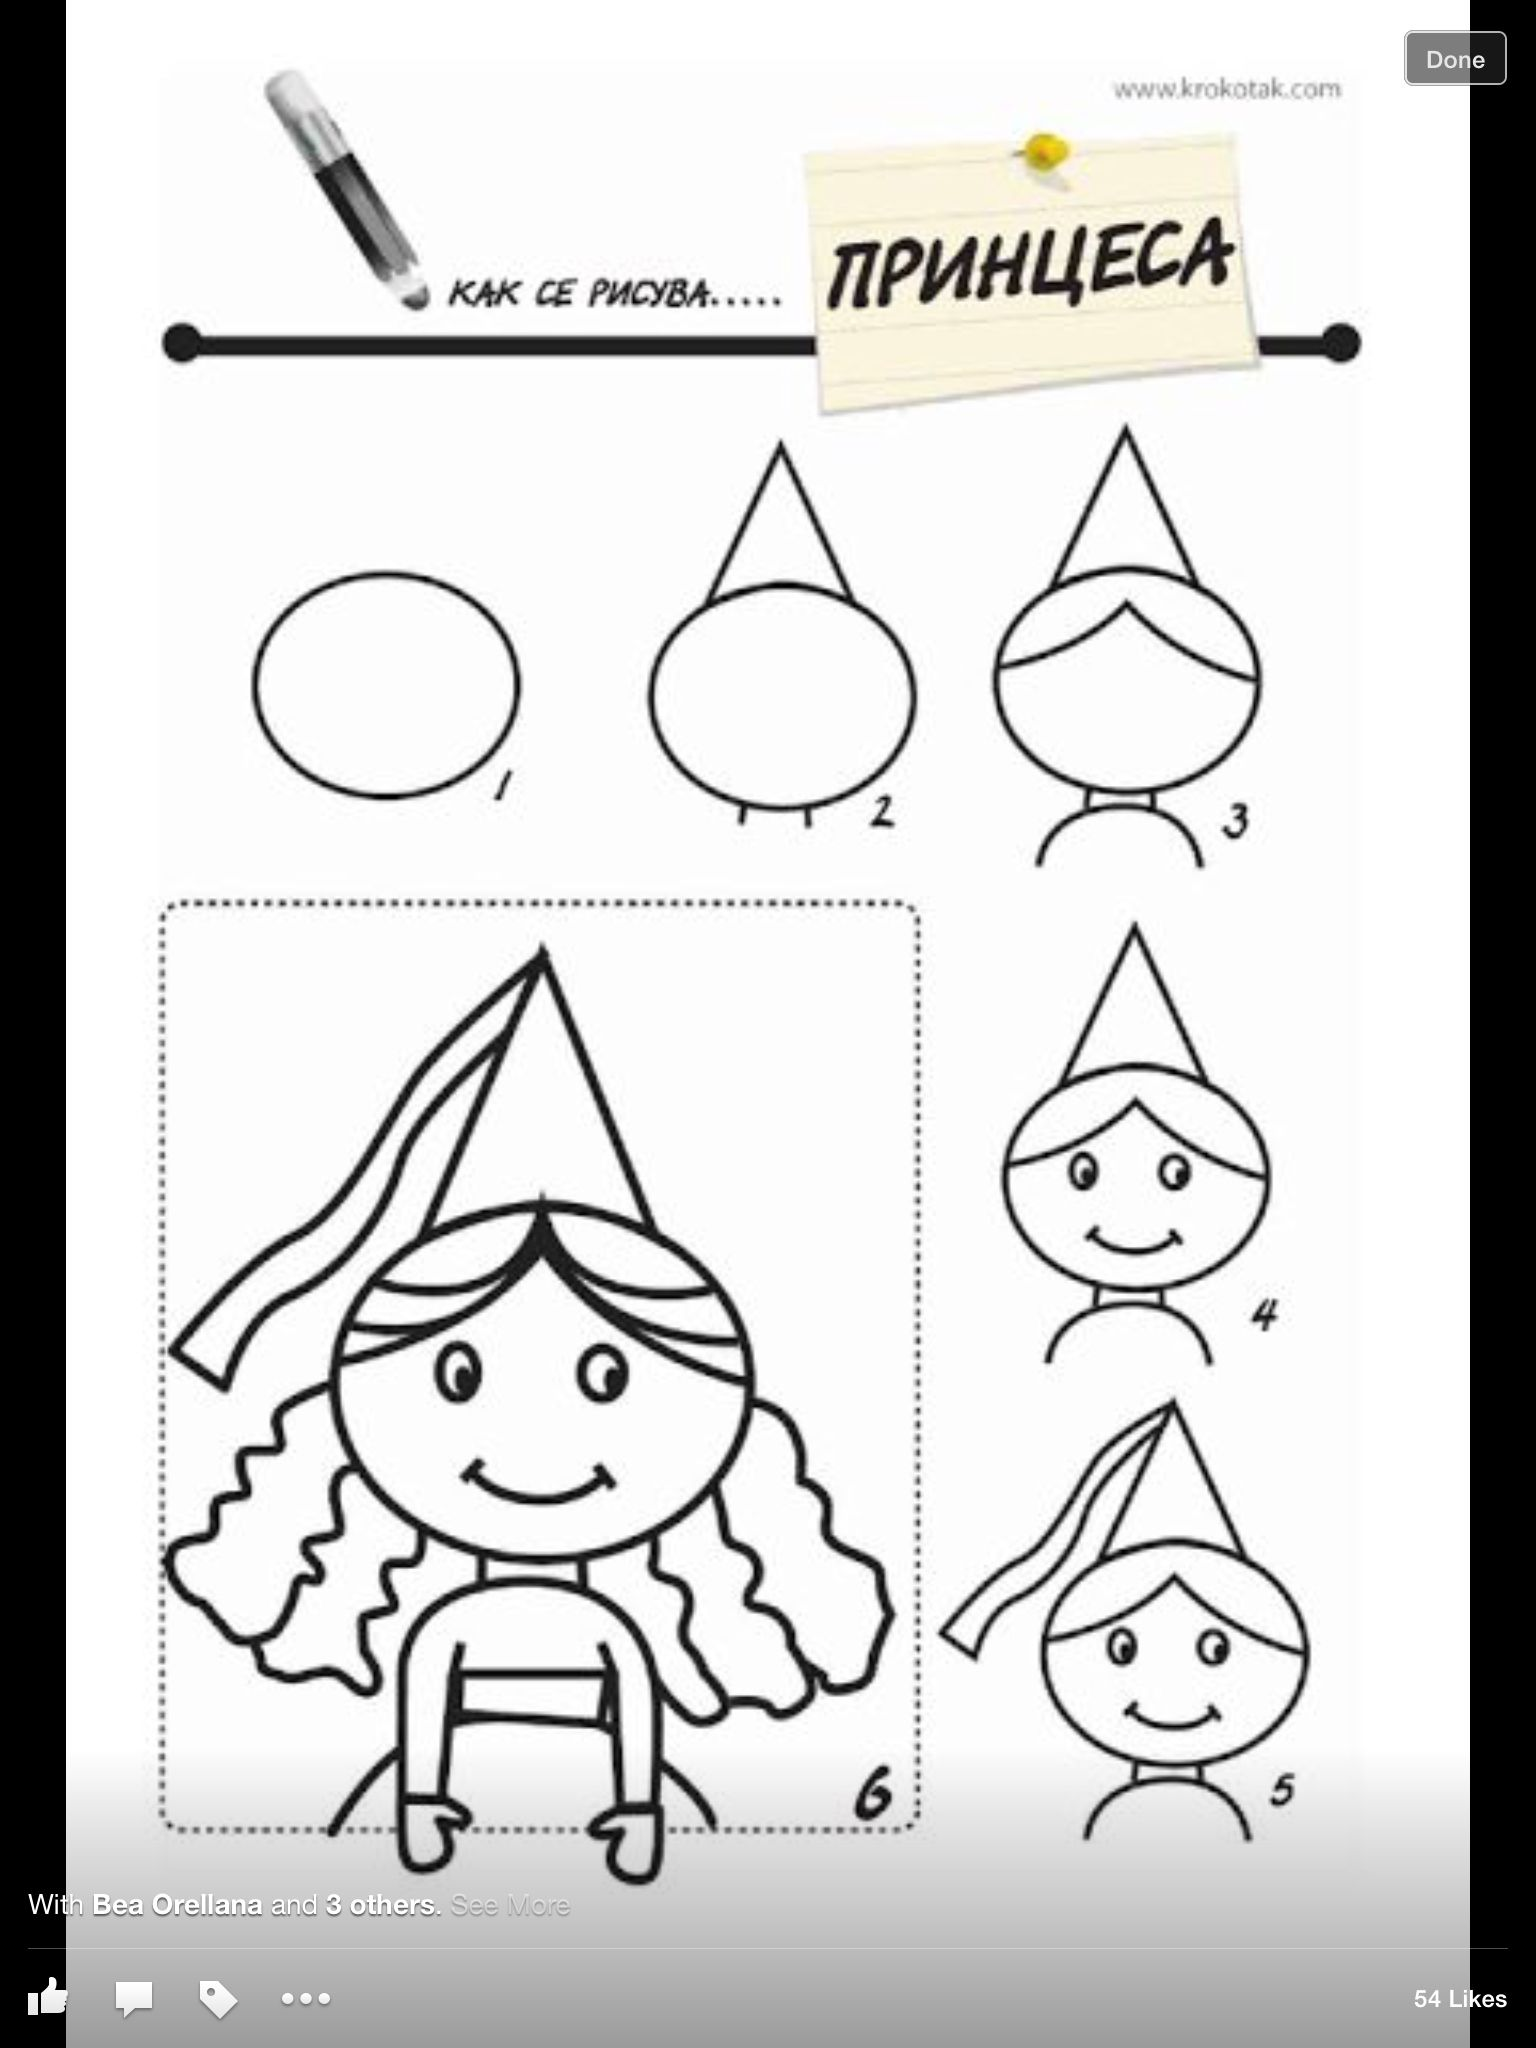 How To Draw A Drawing For Kids Easy Drawings Art For Kids